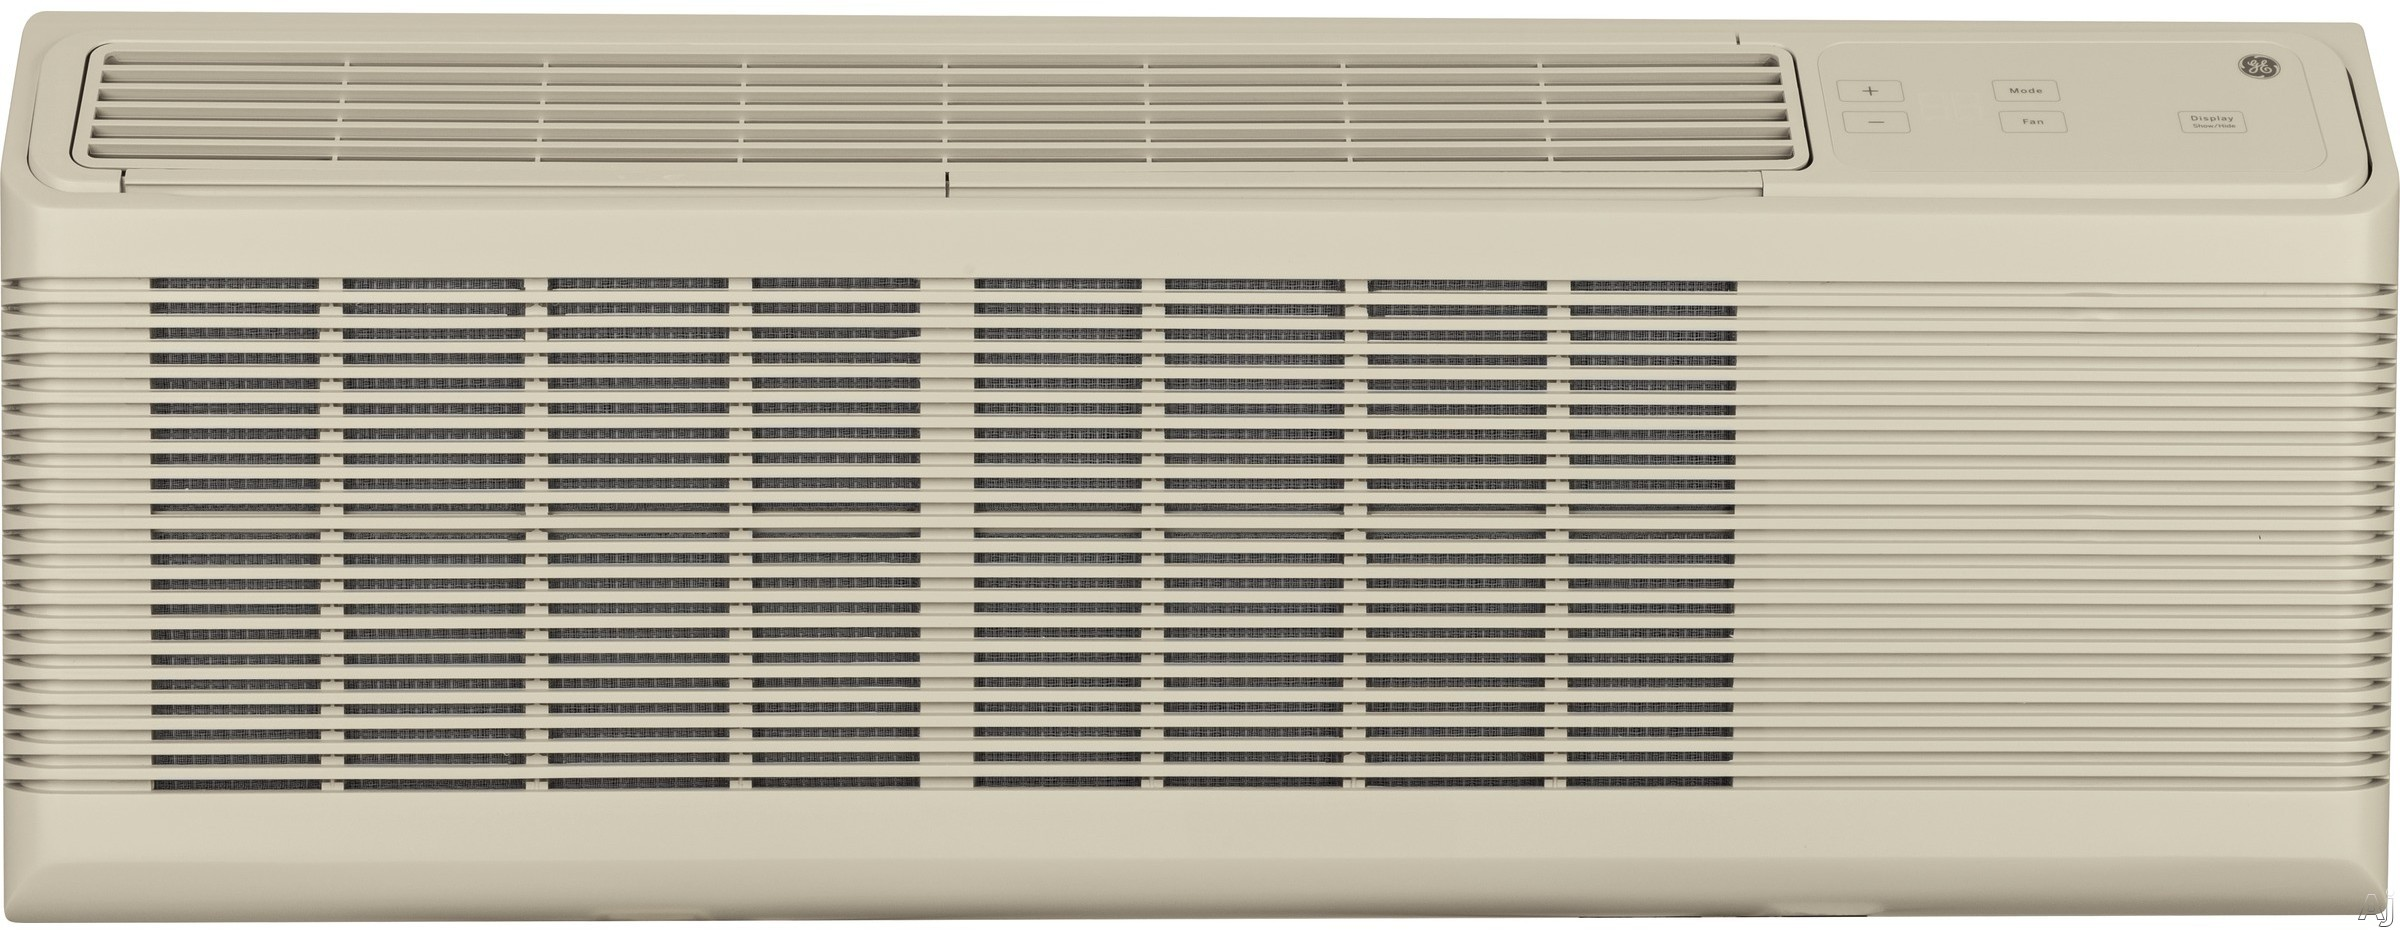 GE Zoneline AZ45E07EAC 7,300 BTU Packaged Terminal Air Conditioner with Electric Heat, Corrosion Protection, 13.4 EER, 1.7 Pints Per Hour Dehumidification, R410A Refrigerant and 265 Volt AZ45E07EAC